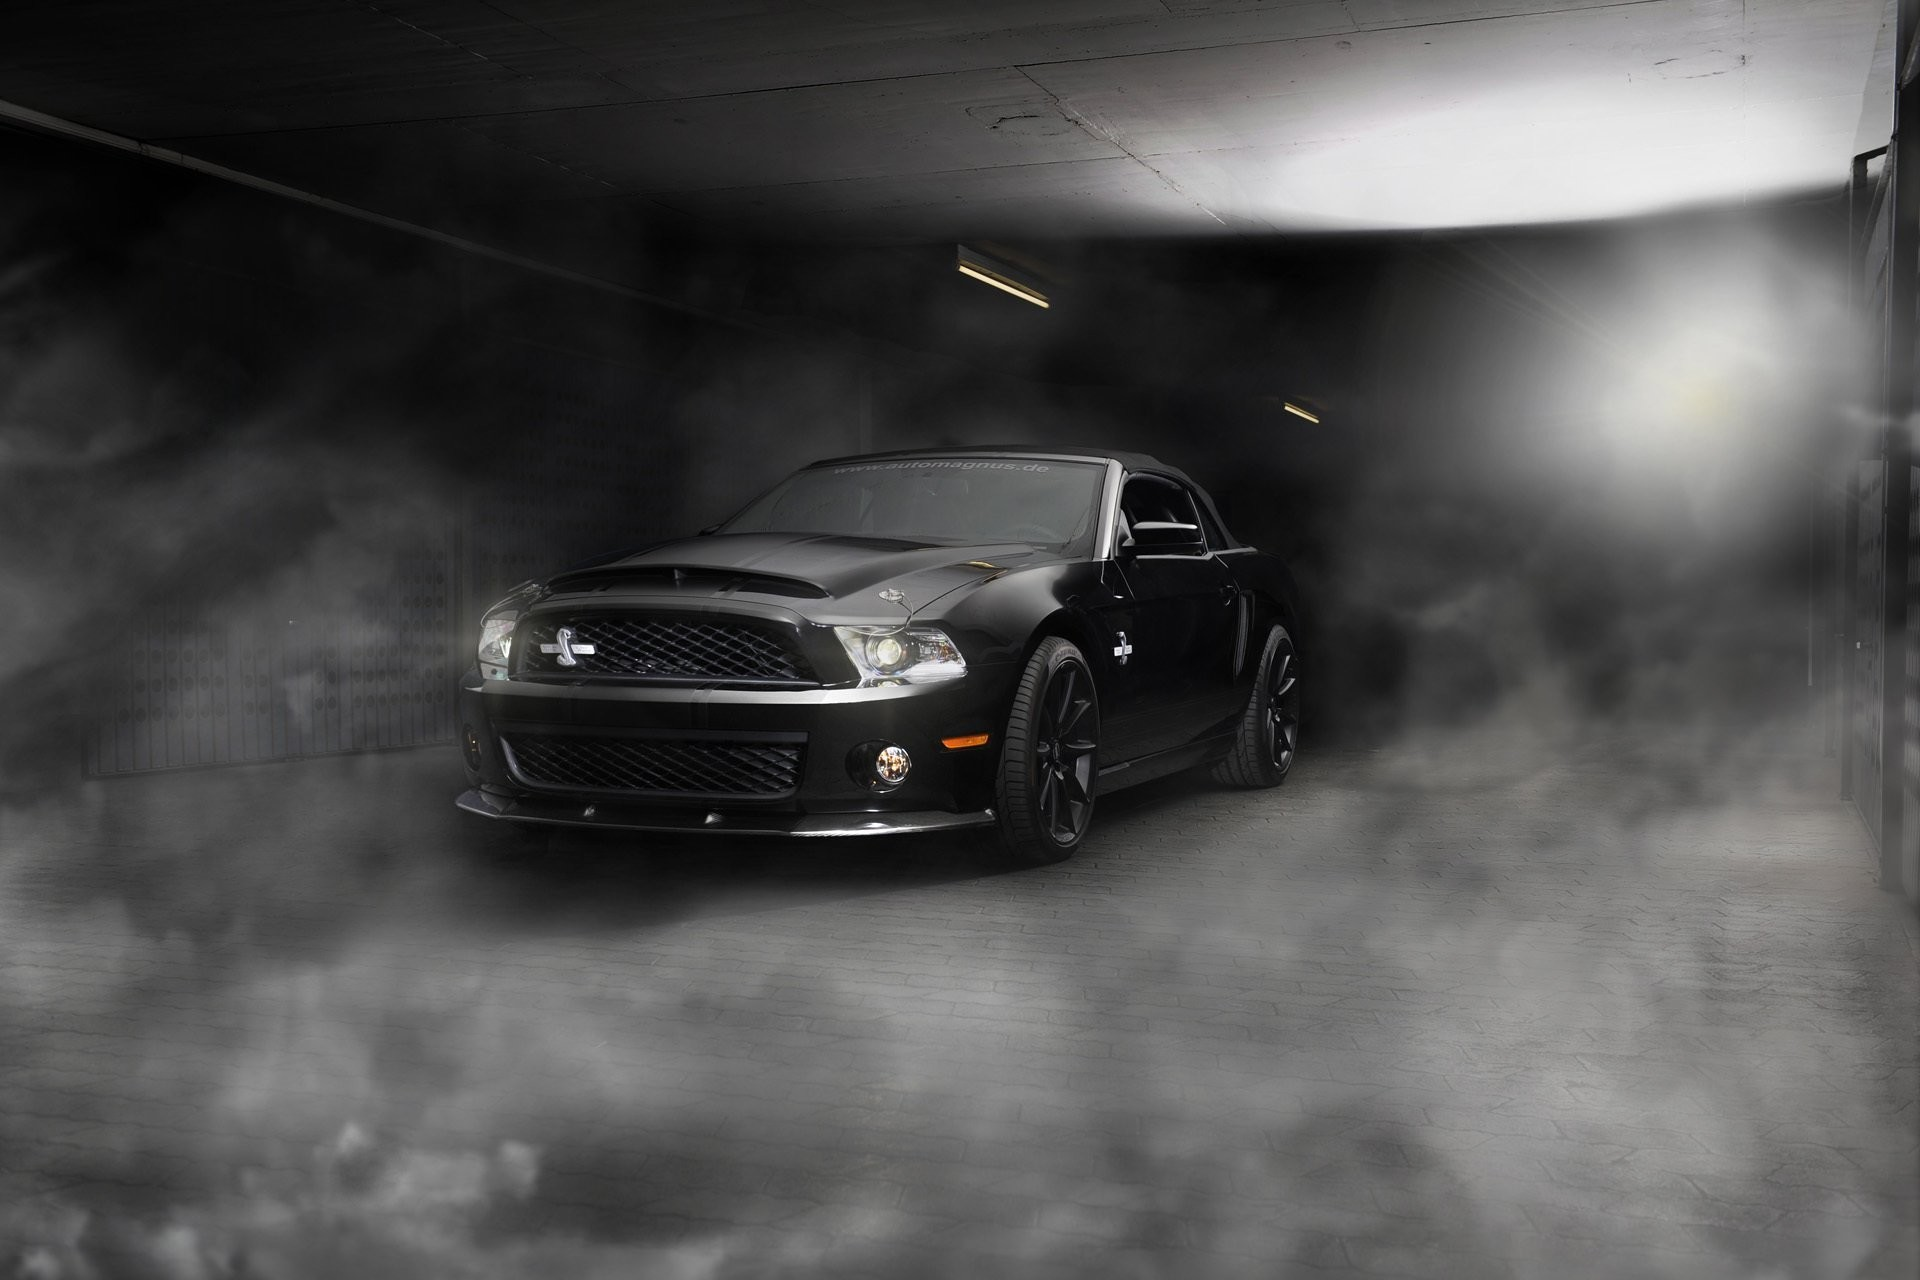 Res: 1920x1280, 1920x1080 1969 Ford Shelby Mustang GT500 picture